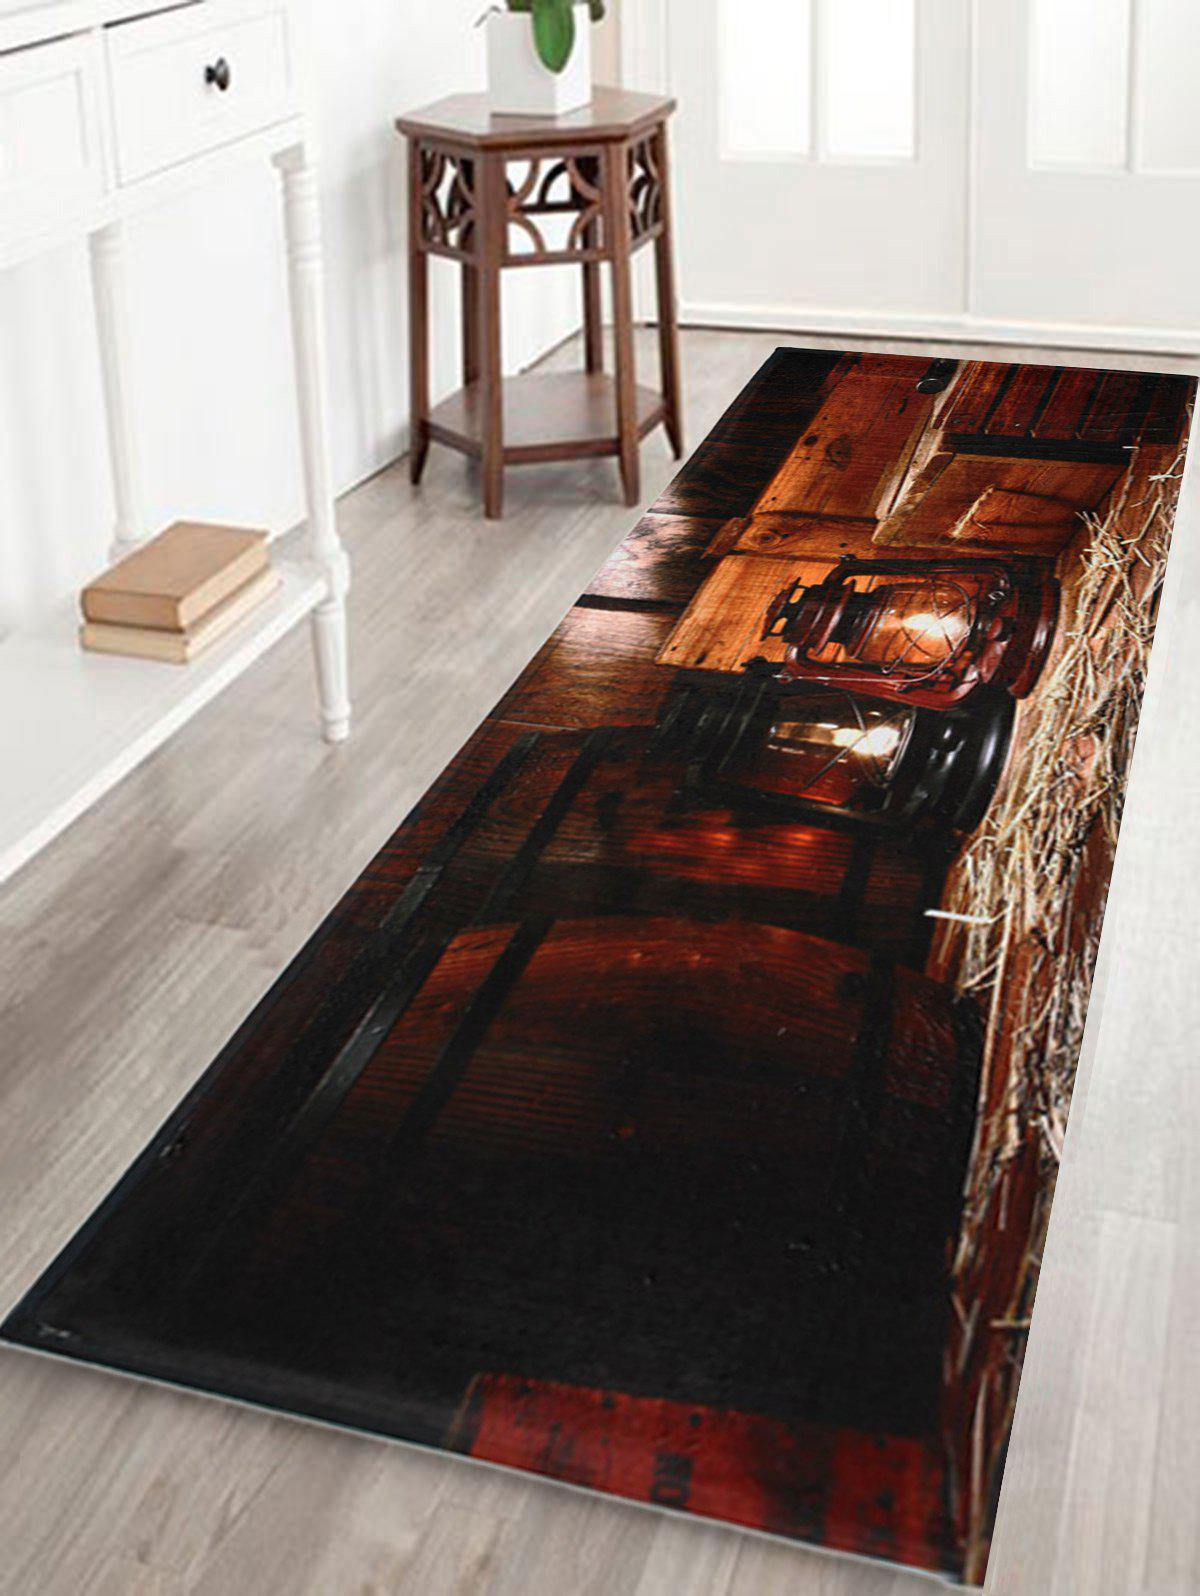 Antislip Coral Fleece Vintage Lantern Area RugHOME<br><br>Size: W24 INCH * L71 INCH; Color: BROWN; Products Type: Bath rugs; Materials: Coral FLeece; Pattern: Print; Style: Vintage; Shape: Rectangle; Package Contents: 1 x Area Rug;